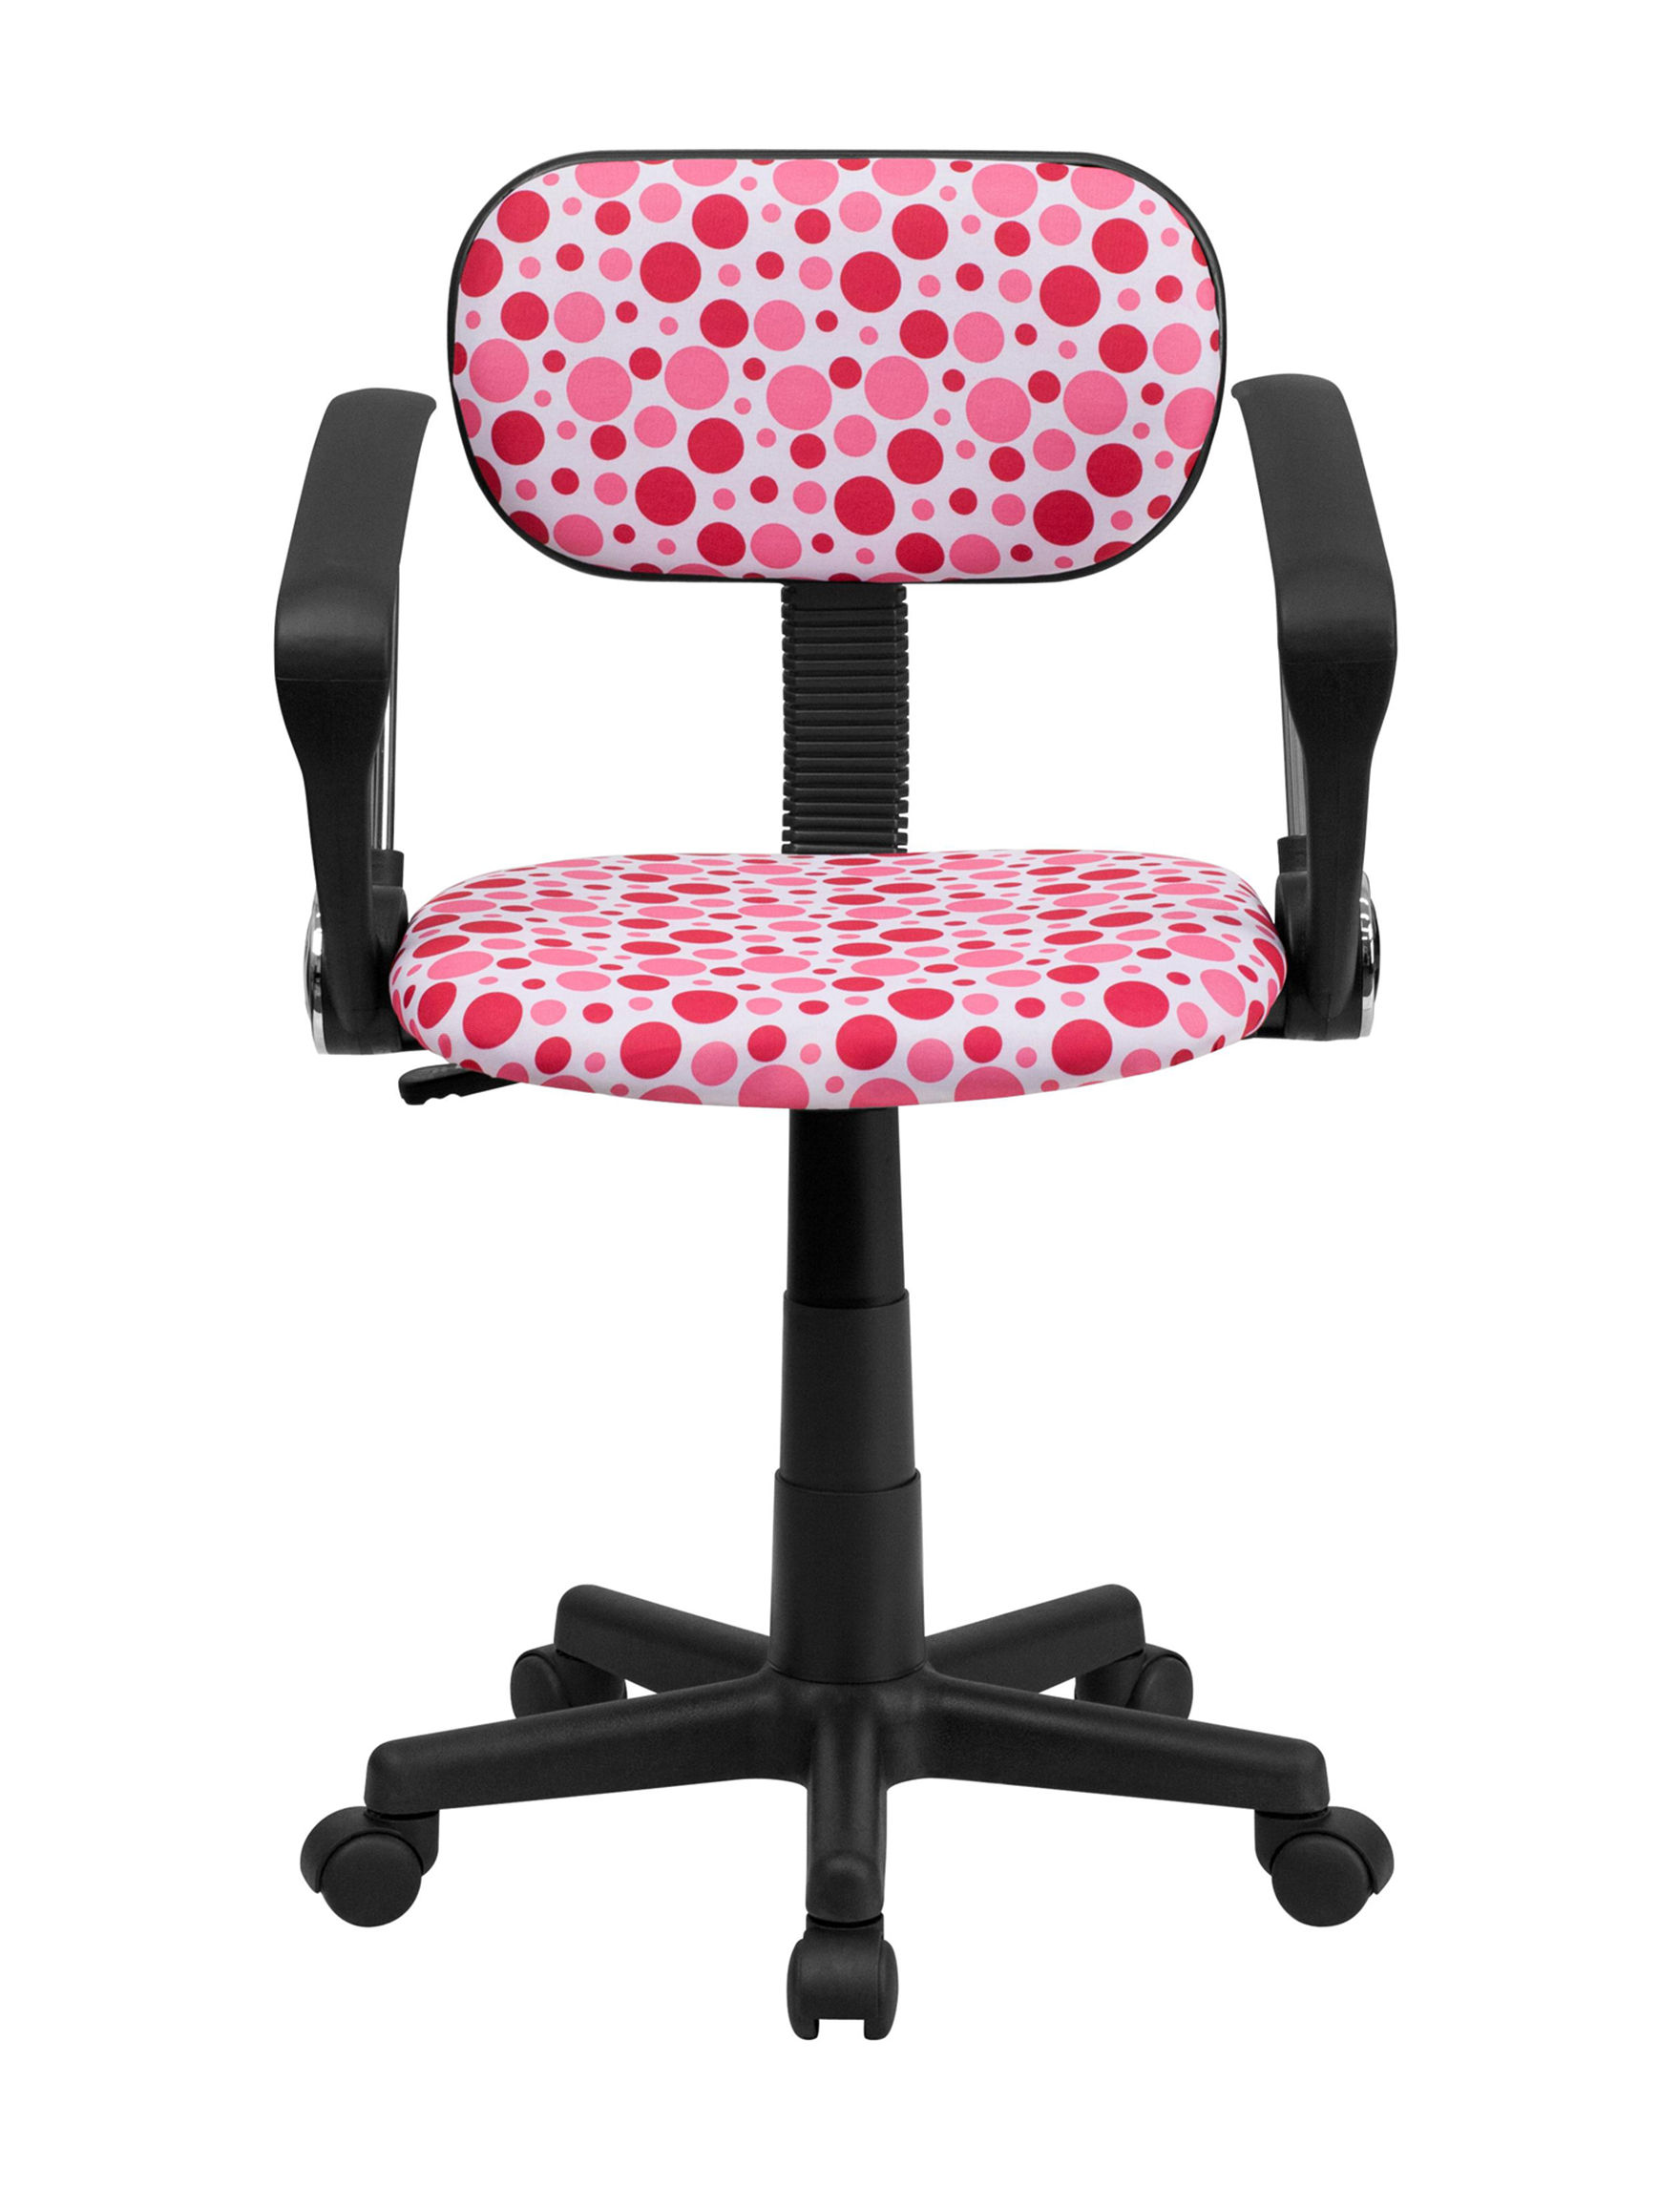 Flash Furniture Pink / Multi Dot Desk Chairs Office Chairs Home Office Furniture